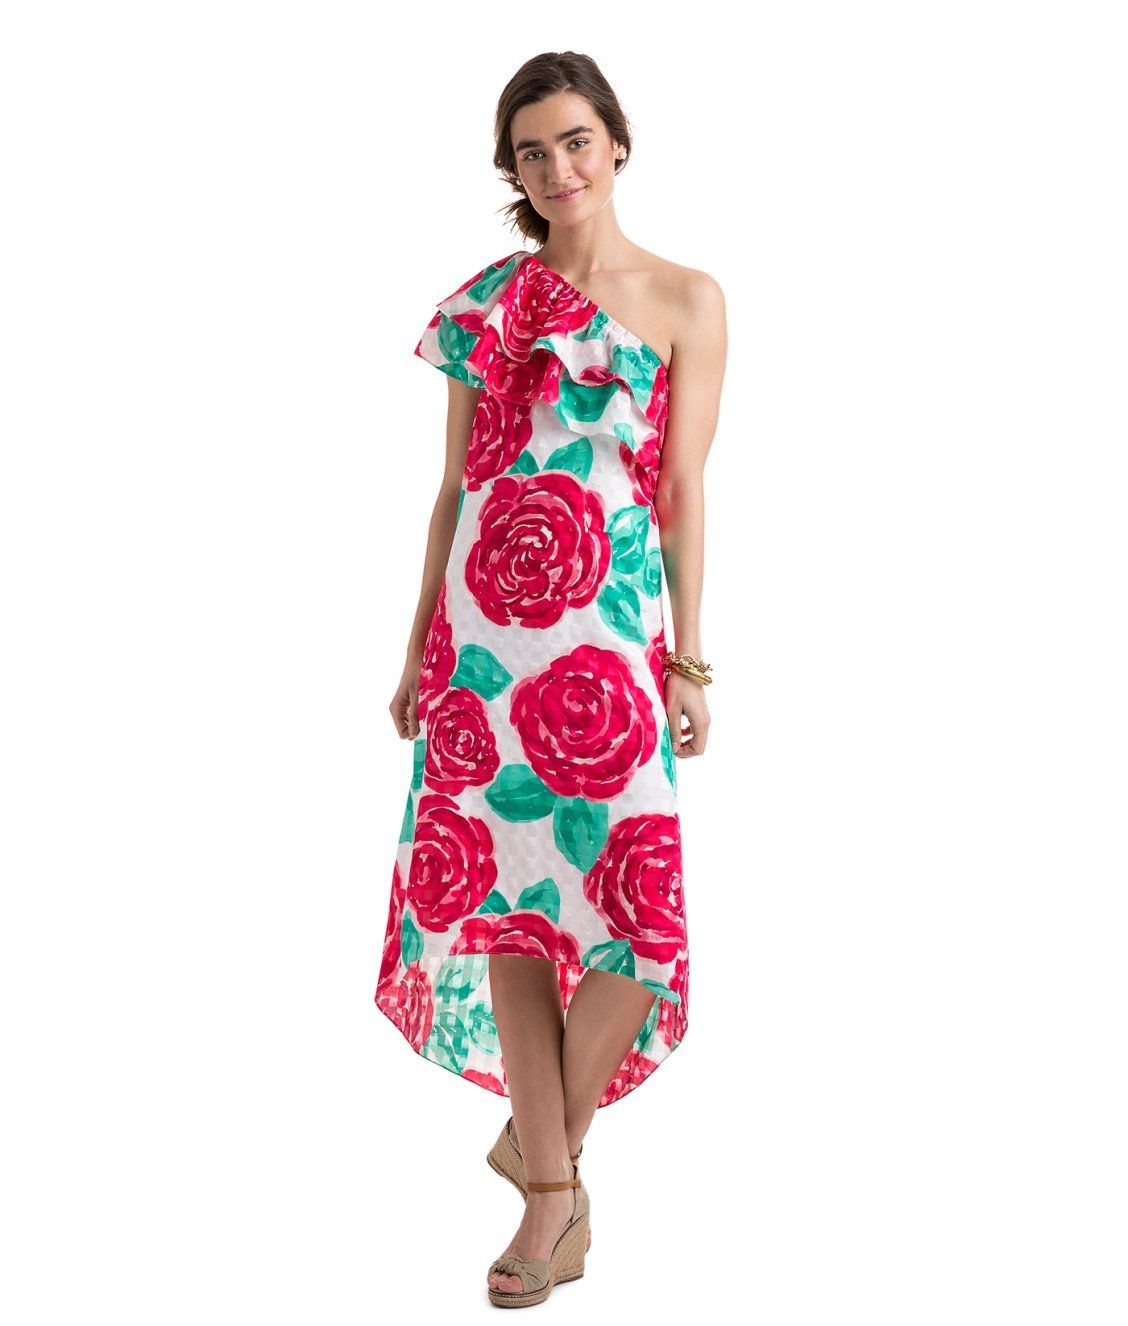 e6879e53c362 Run For The Roses One Shoulder Dress. Vineyard Vines 2018 Kentucky Derby.  Click to shop!